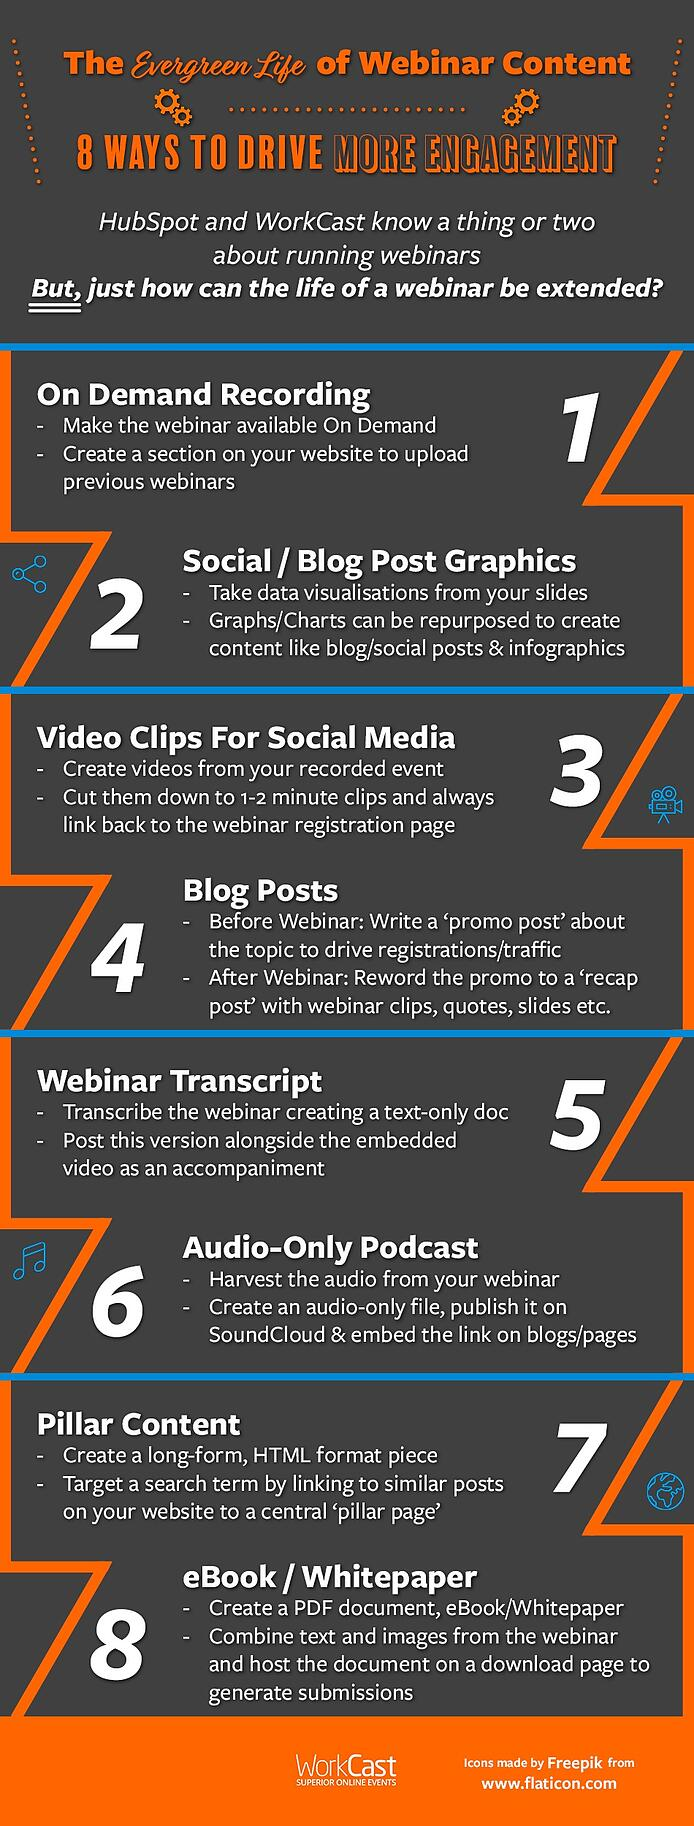 Evergreen Life Of Content Infographic 72.jpg